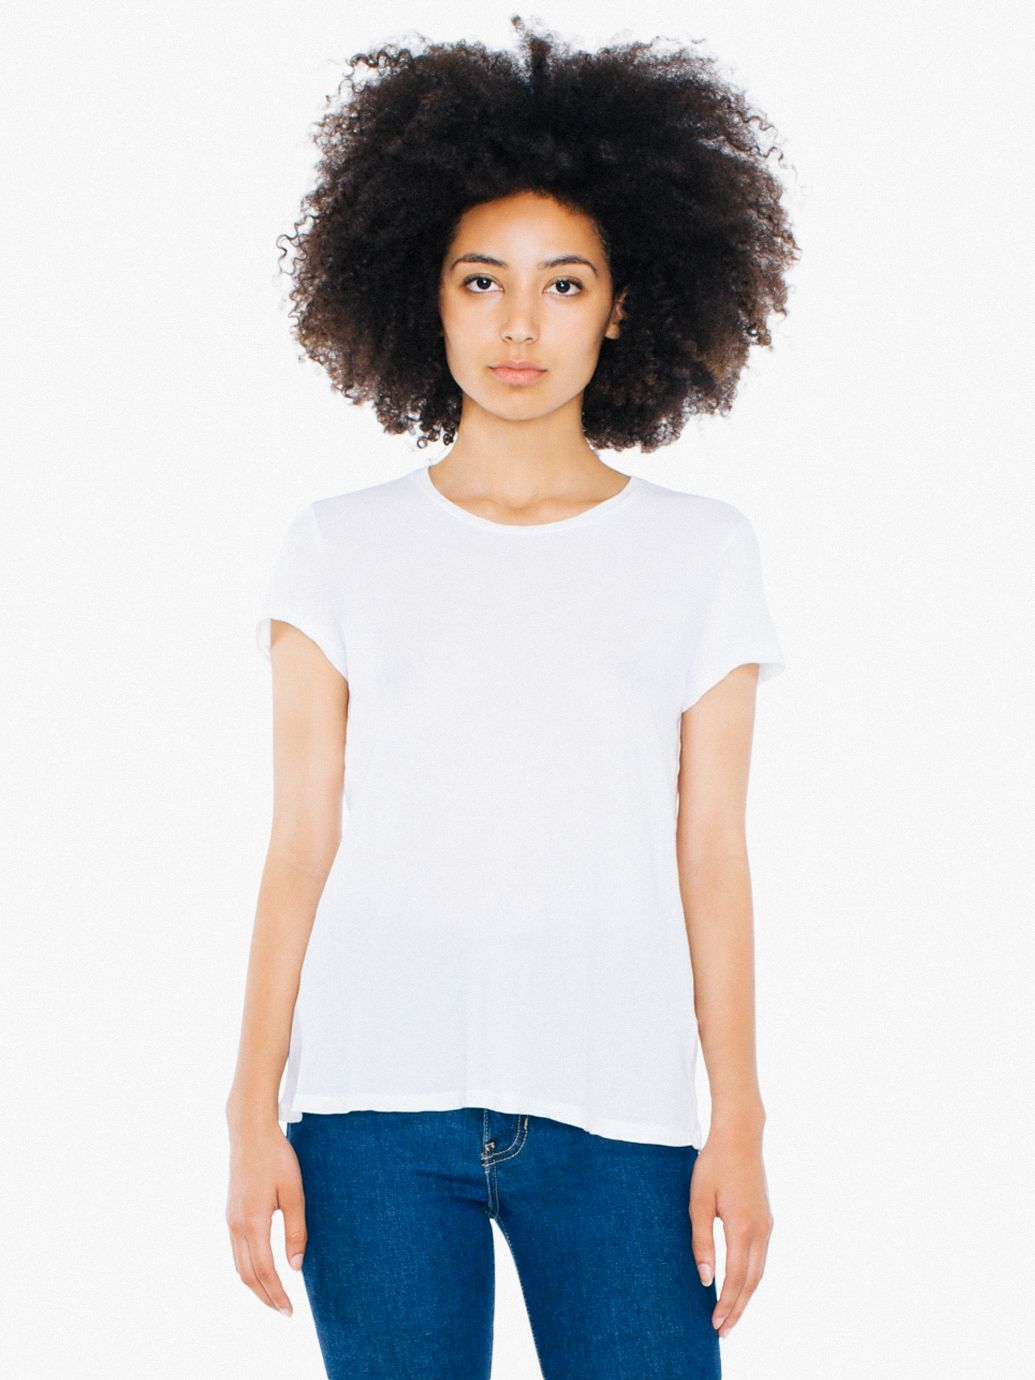 Best white t-shirts for women: American Apparel's 50/1 cotton crewneck t-shirt is hard to find but so worth it | coolmompicks.com